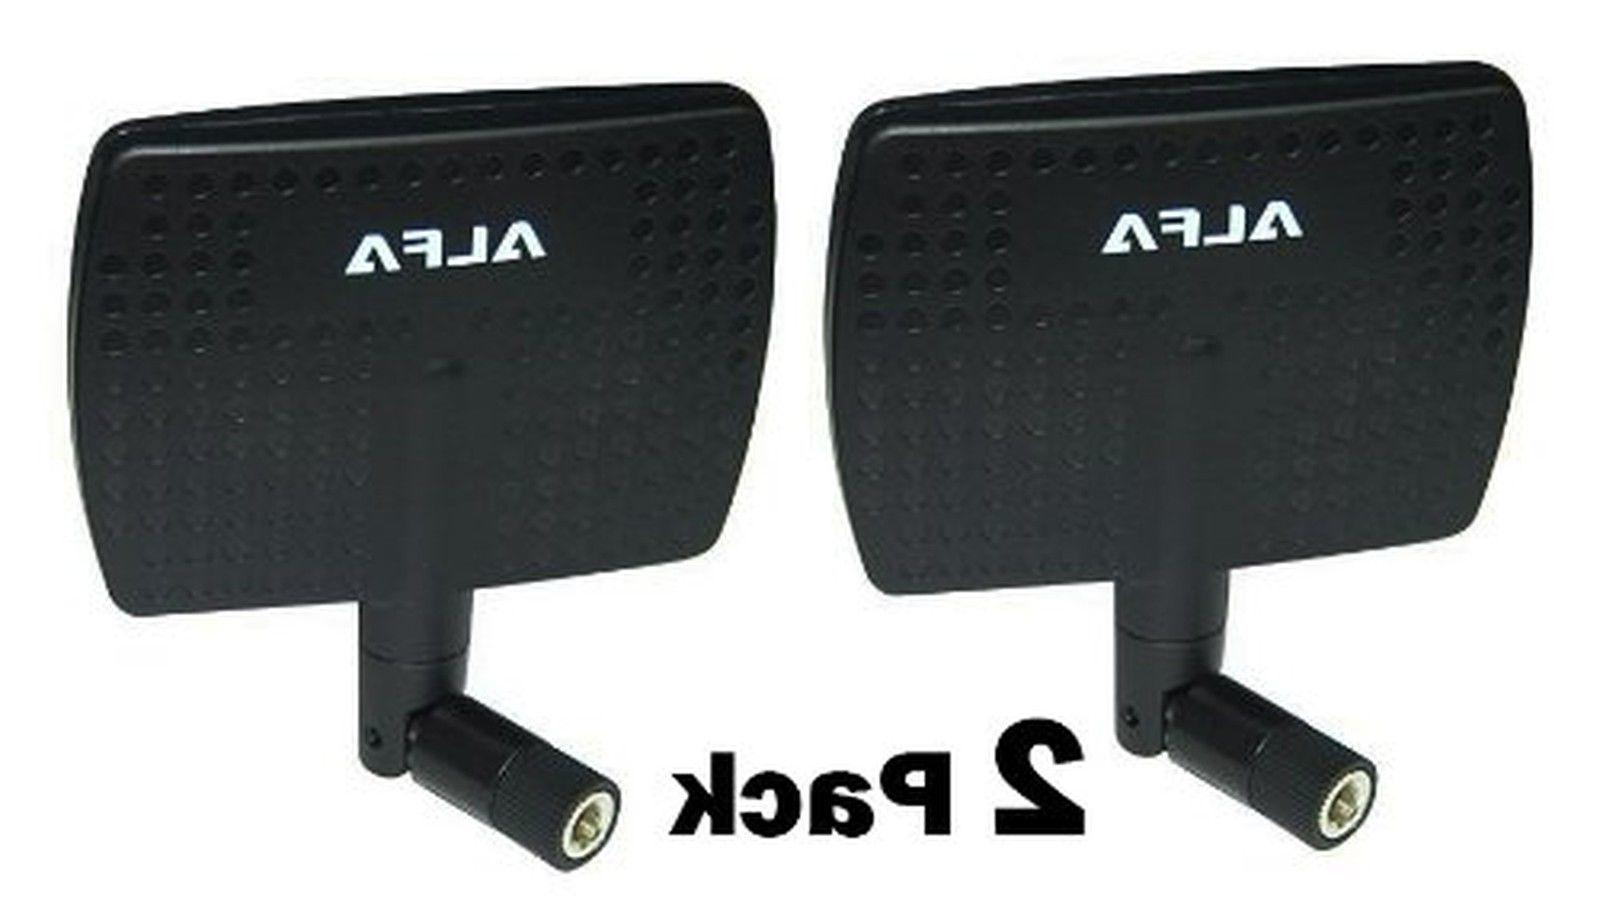 antenna upgrade 2 pack 3dr solo drone